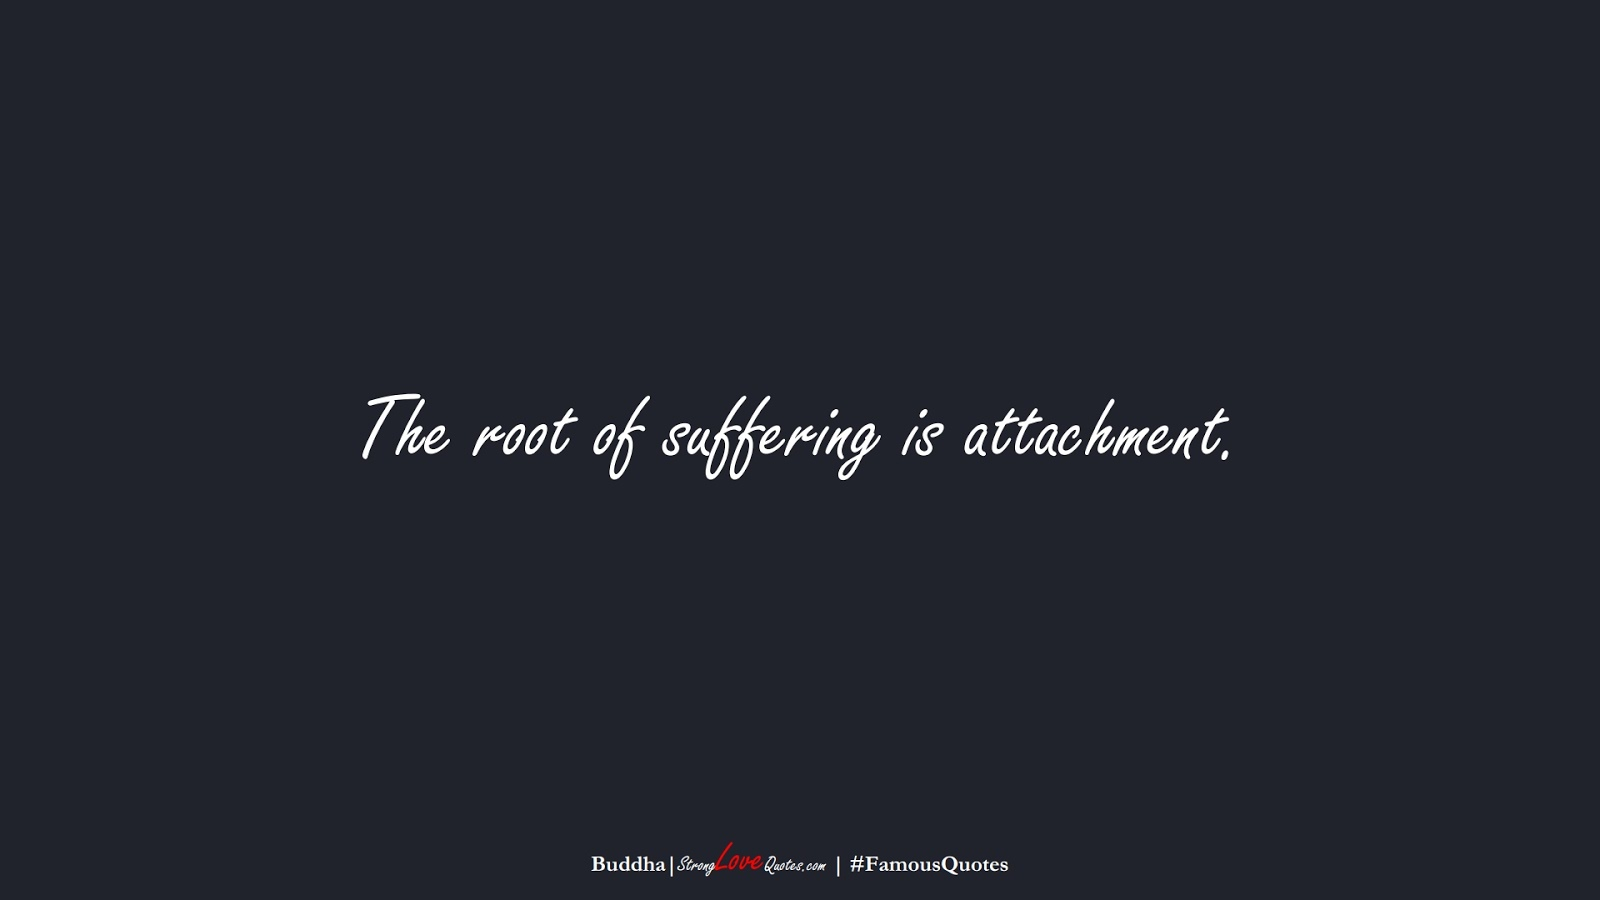 The root of suffering is attachment. (Buddha);  #FamousQuotes